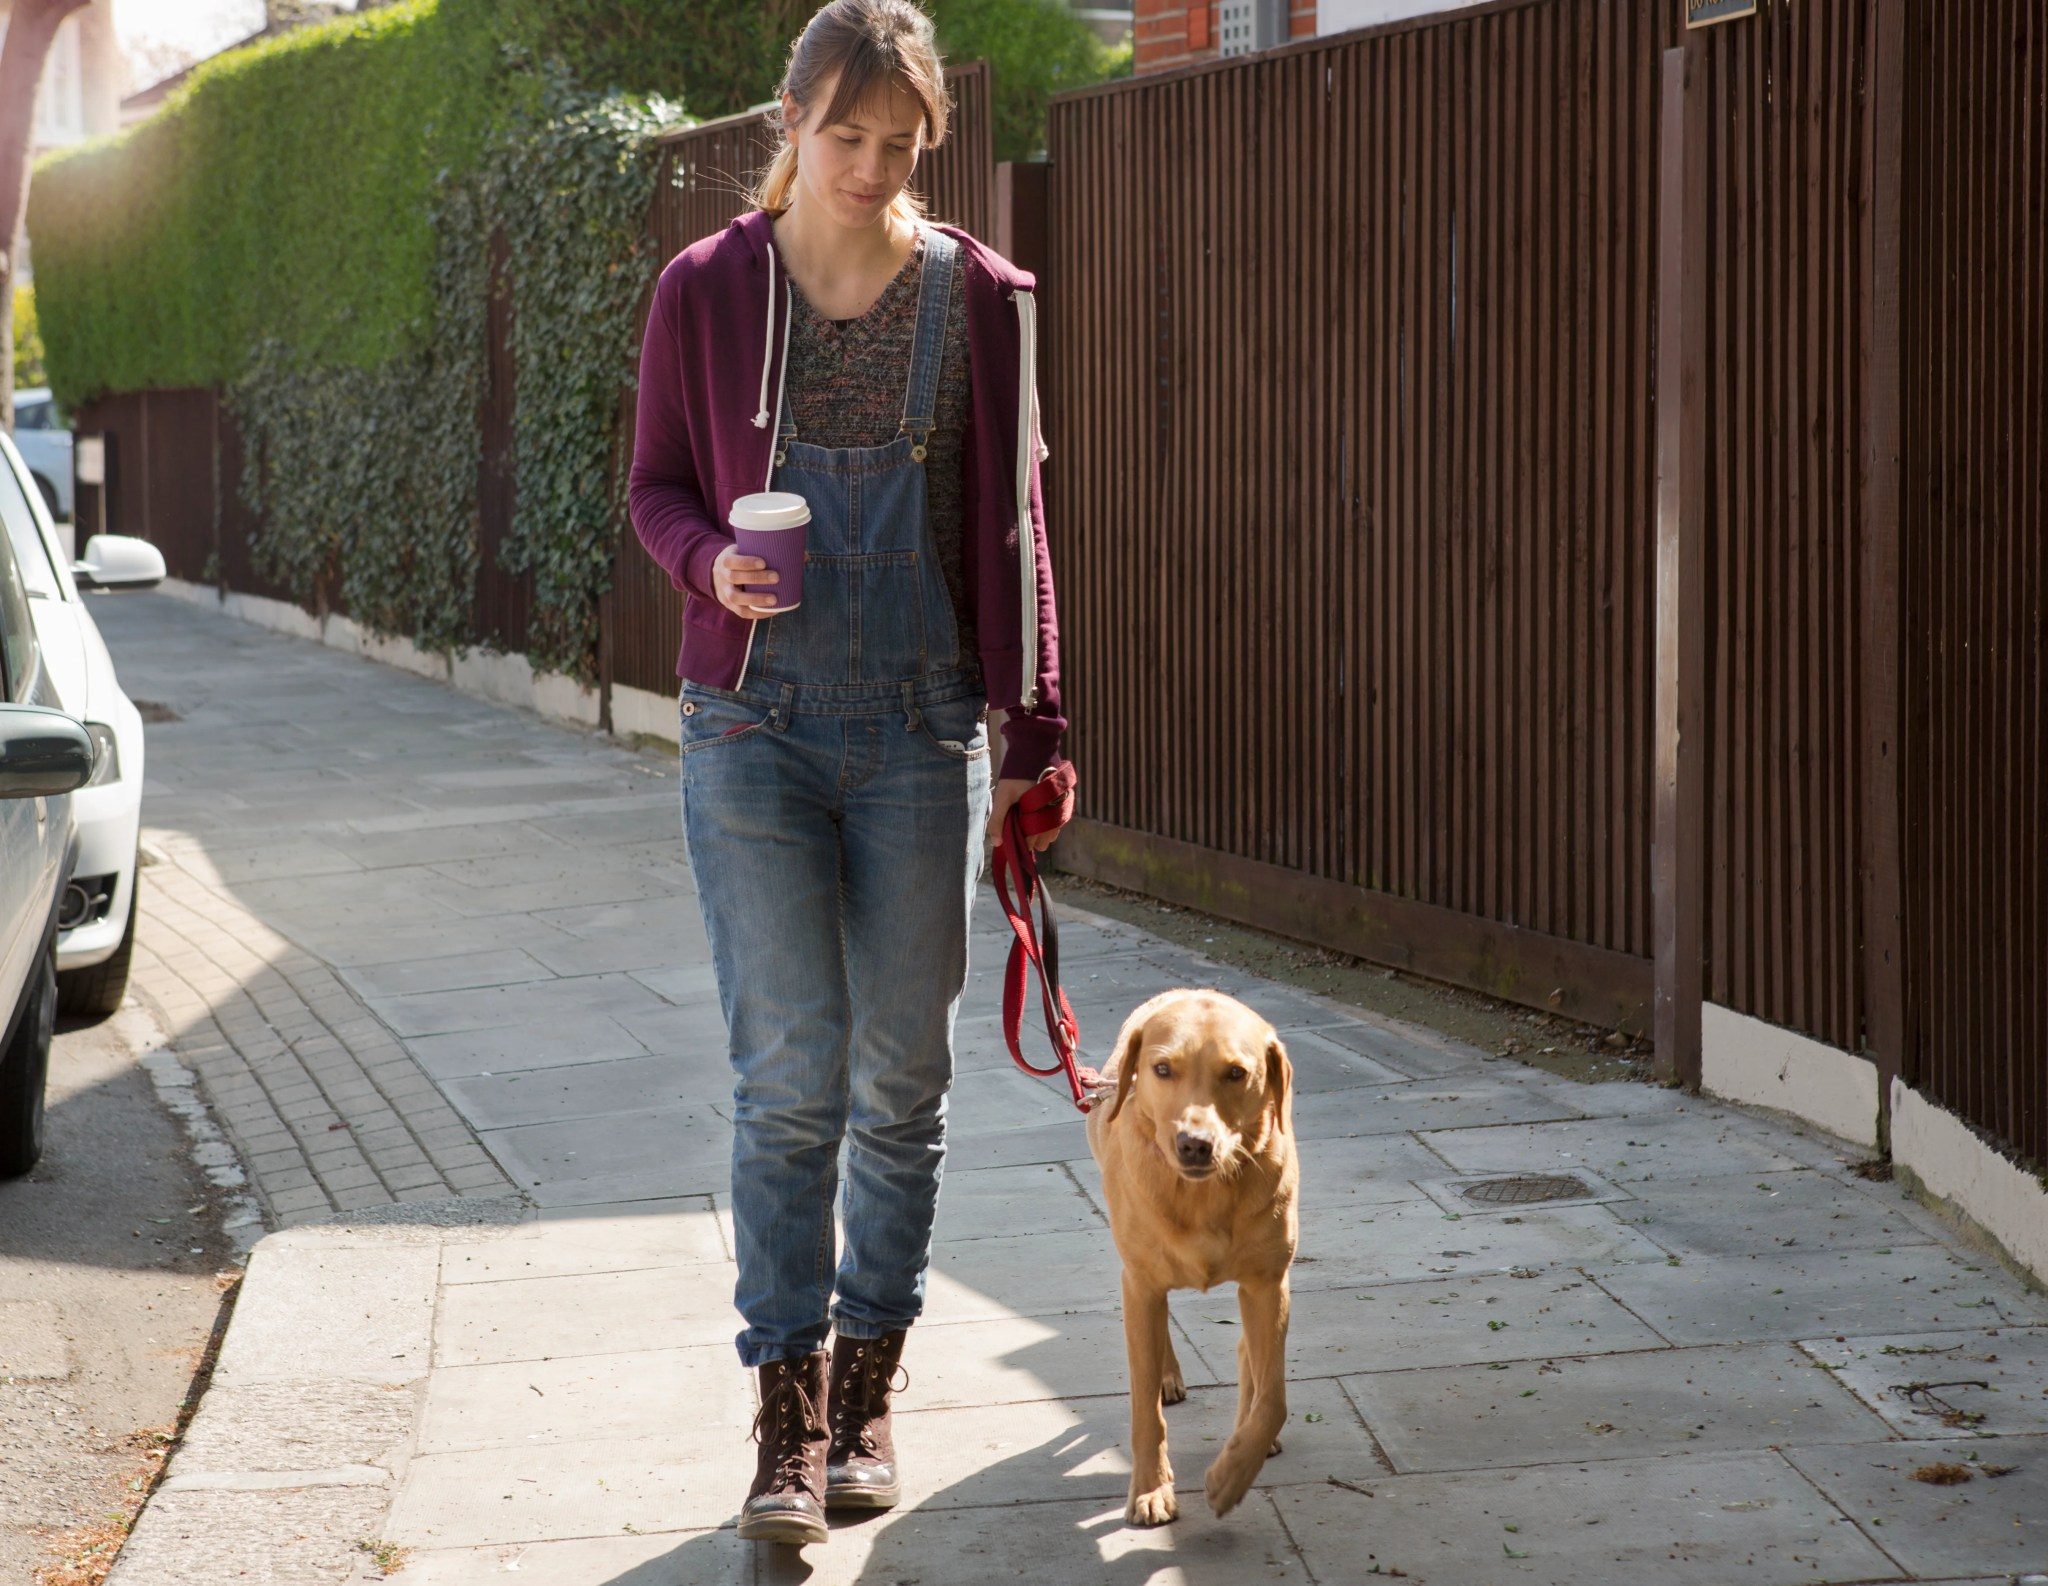 The Best Pet Sitting Options For Traveling Pet Parents